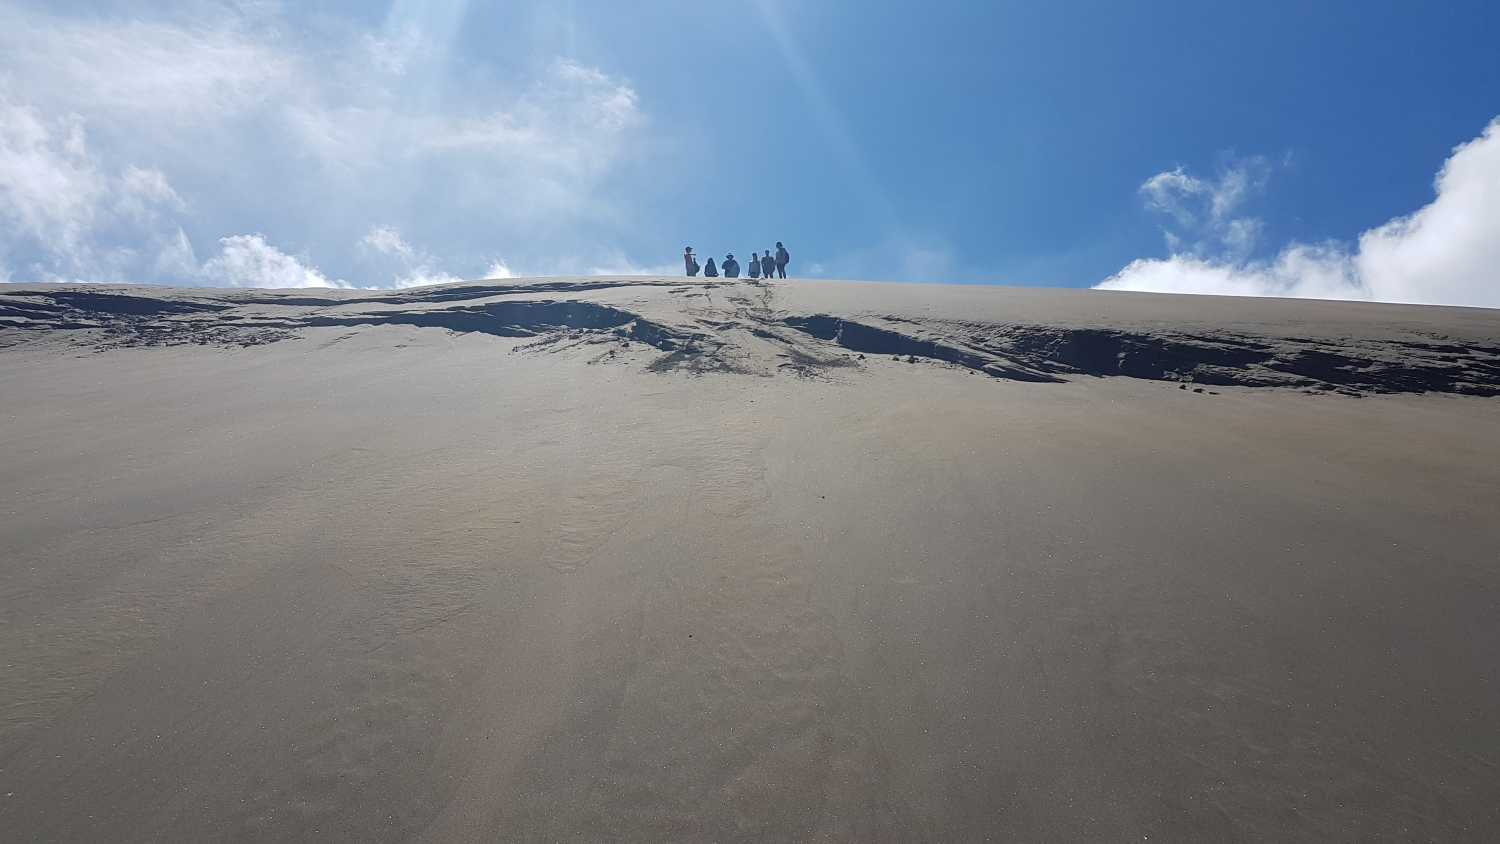 Tour group views Auckland atop the Bethells sand dunes